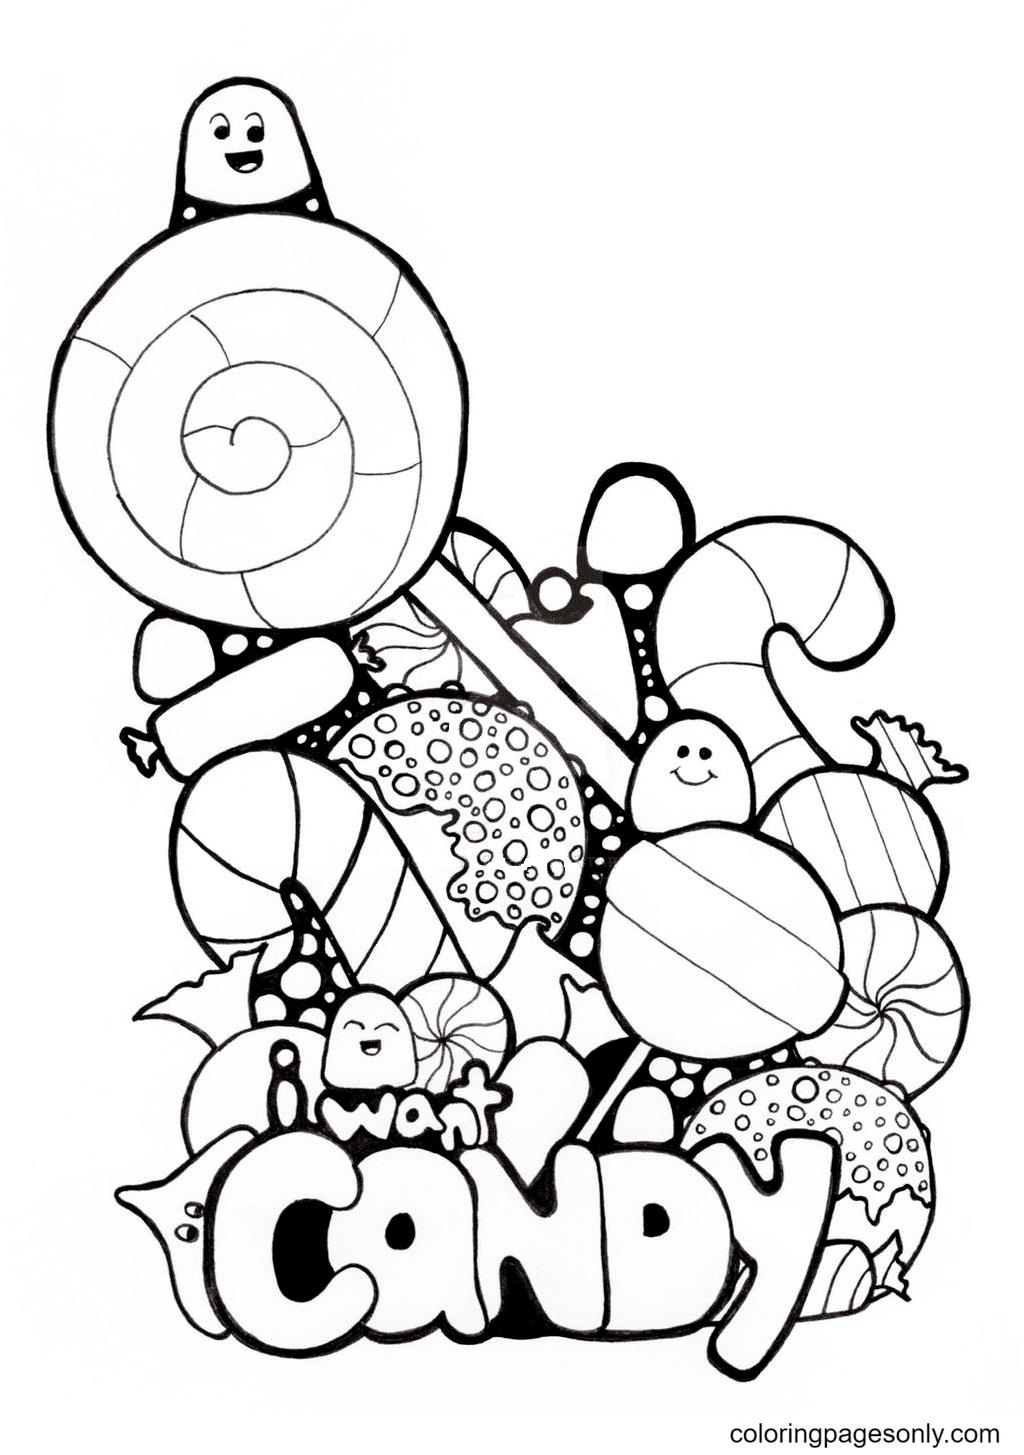 I Want Candy Coloring Page